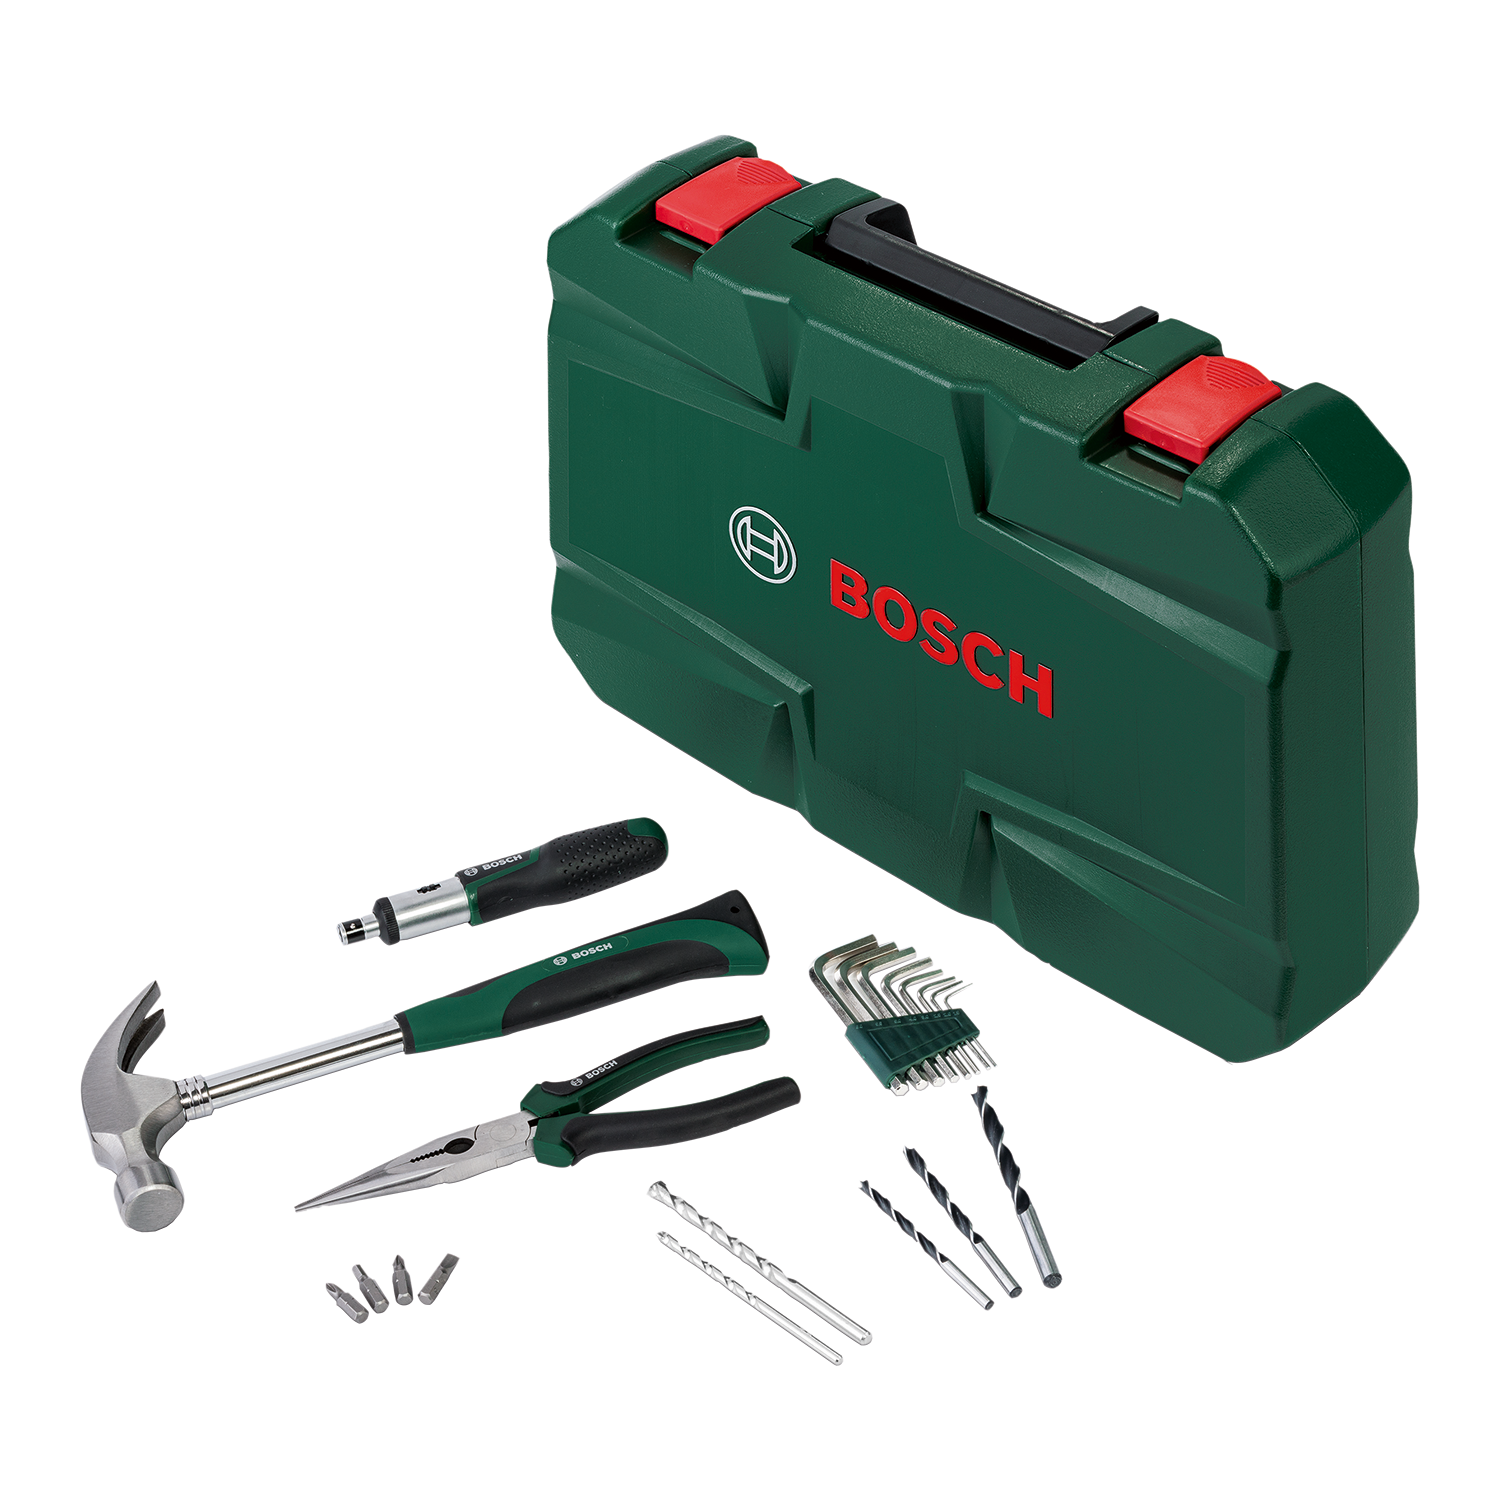 Bosch Promoline All in One Kit Werkzeugkoffer